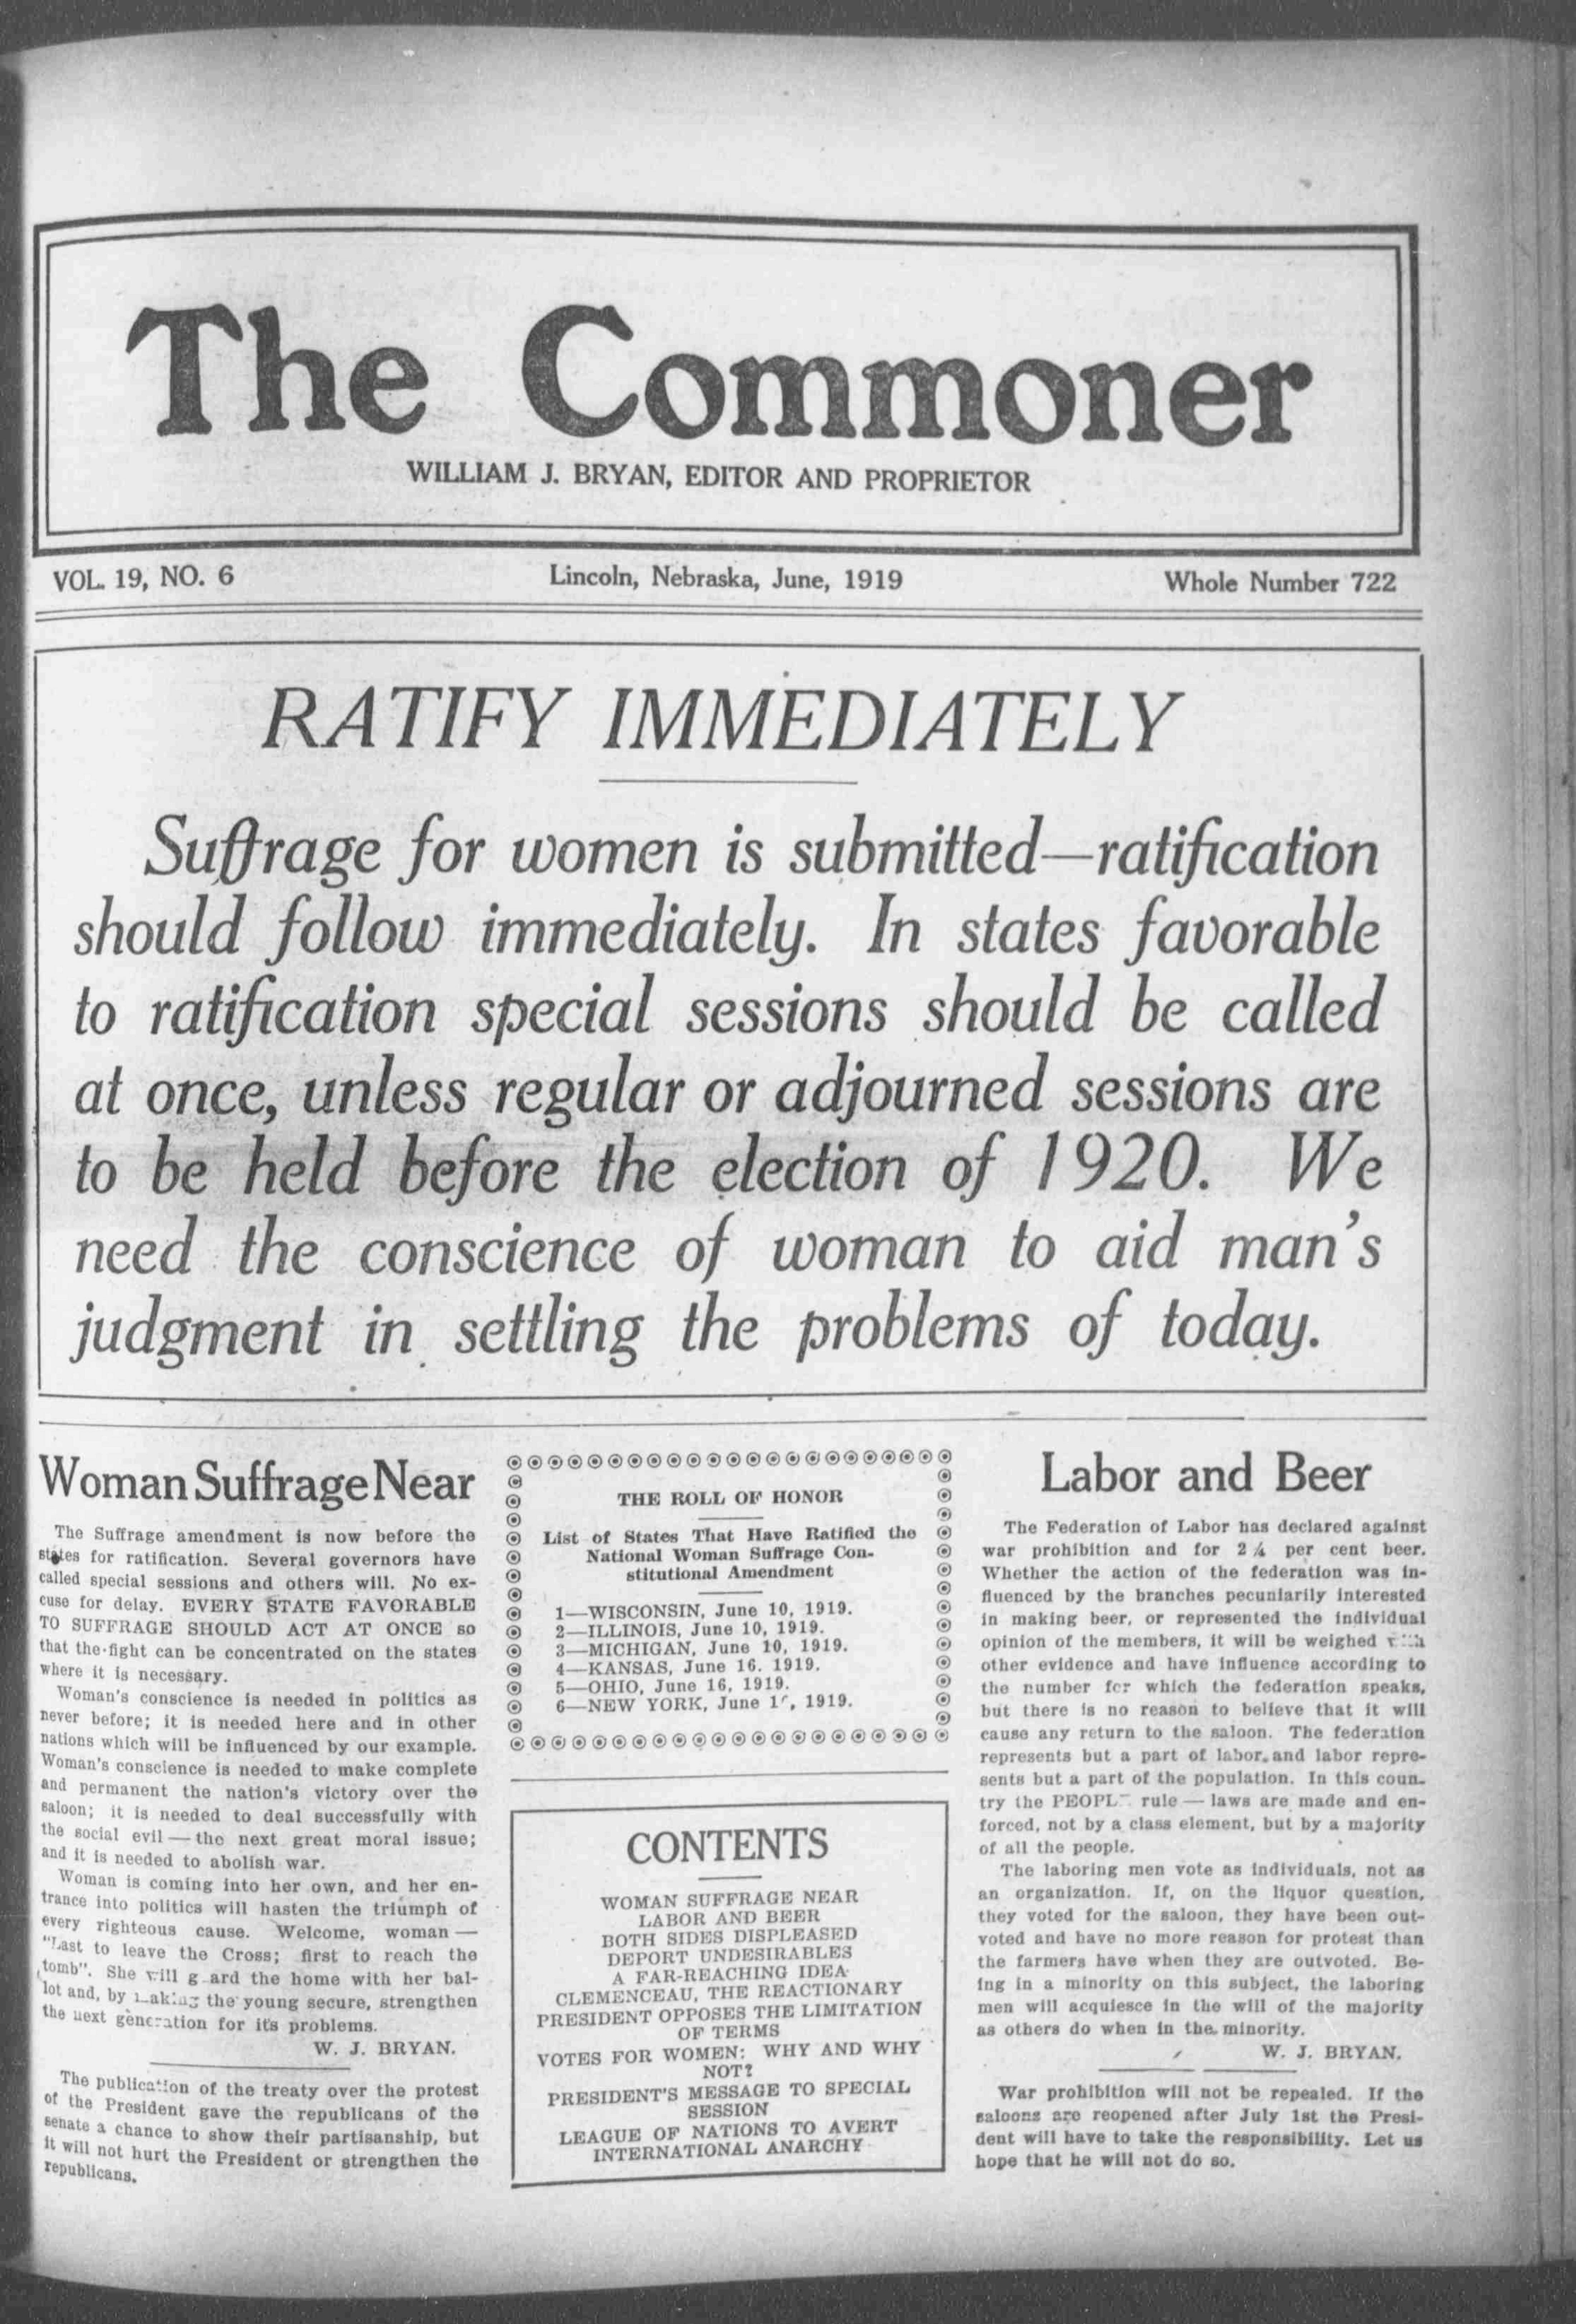 The Commoner. (Lincoln, Neb.), June 1, 1919. Front page news: The debate over national women's suffrage.